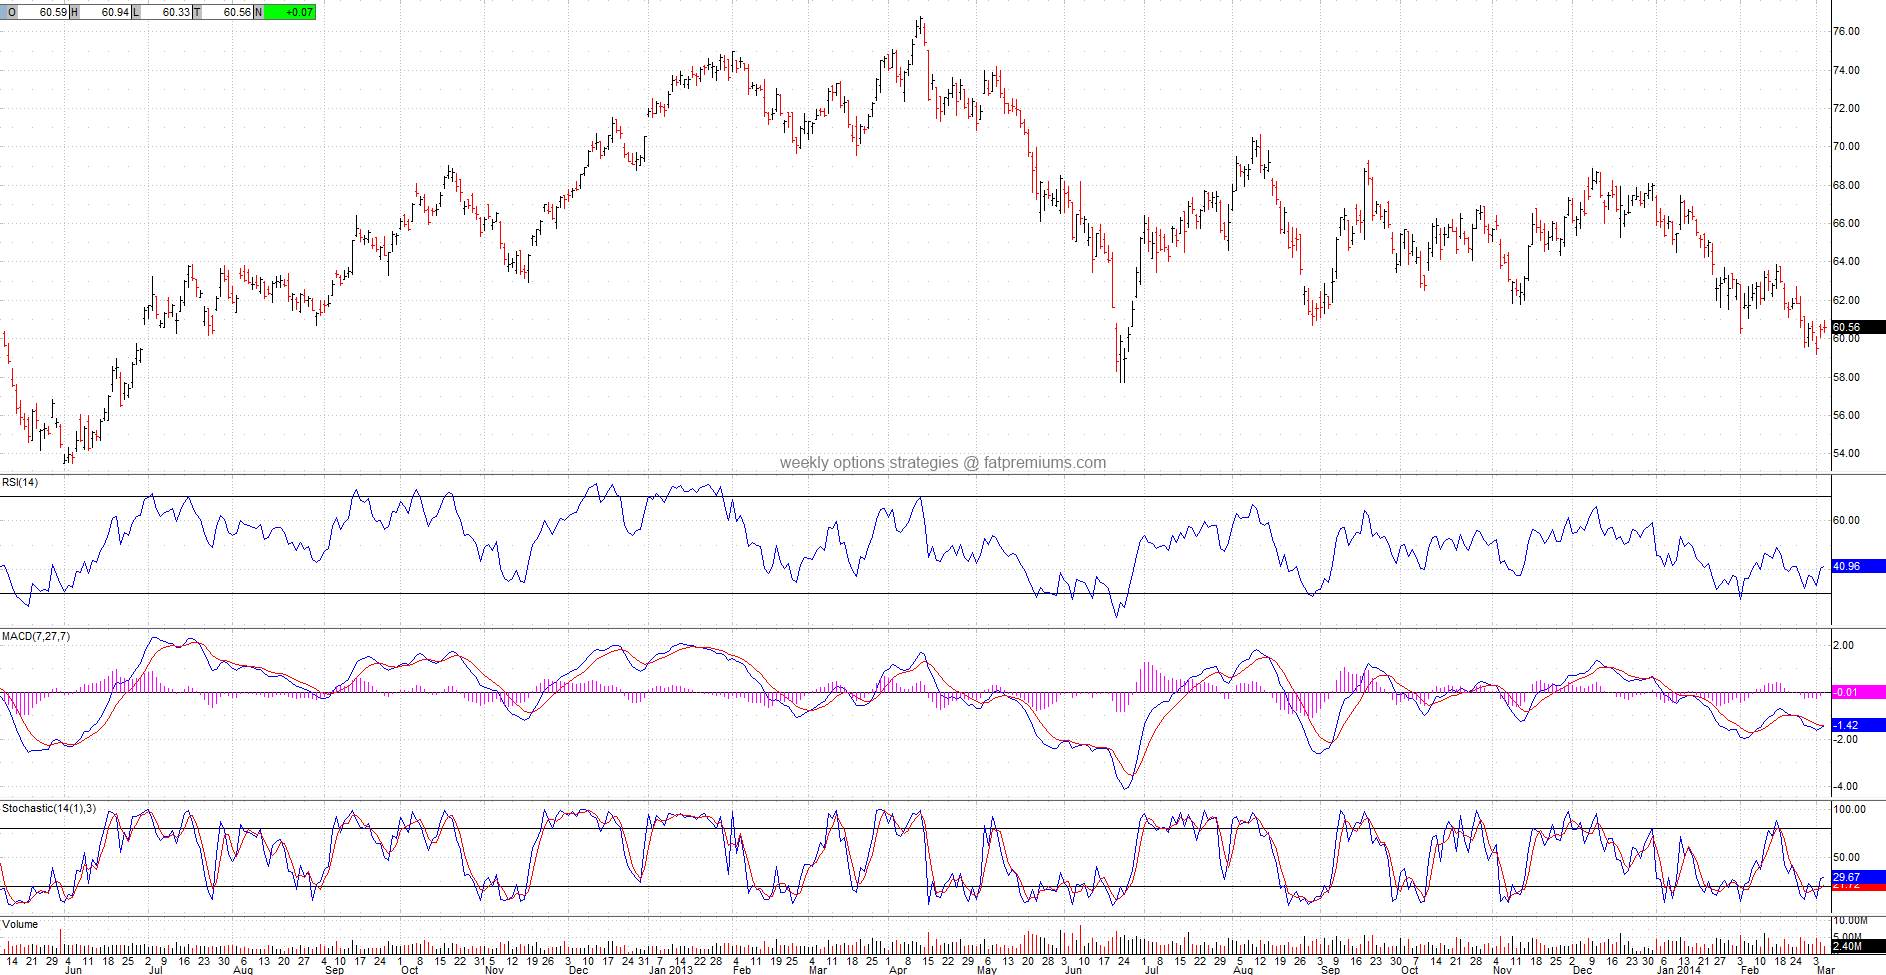 Mexico Investable Mkt Idx MSCI iShares (NYSEARCA:EWW) Daily Chart (2014-03-05) Bullish